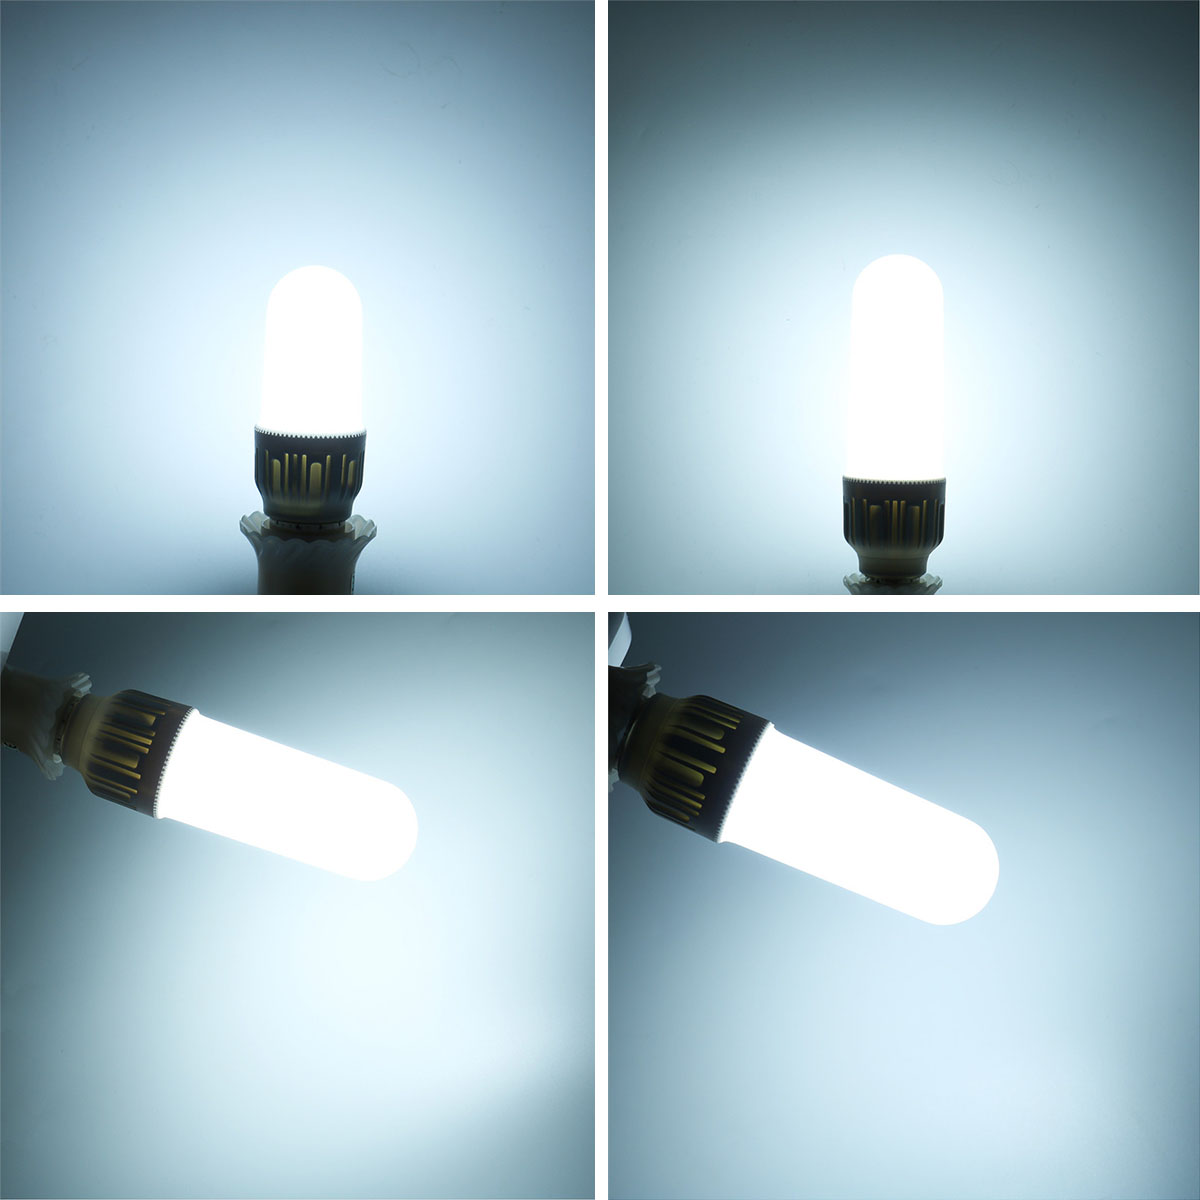 16W E27 2835 SMD 1400LM Pure White LED Corn Light Bulb Energy Saving Bright Lamp AC 220V